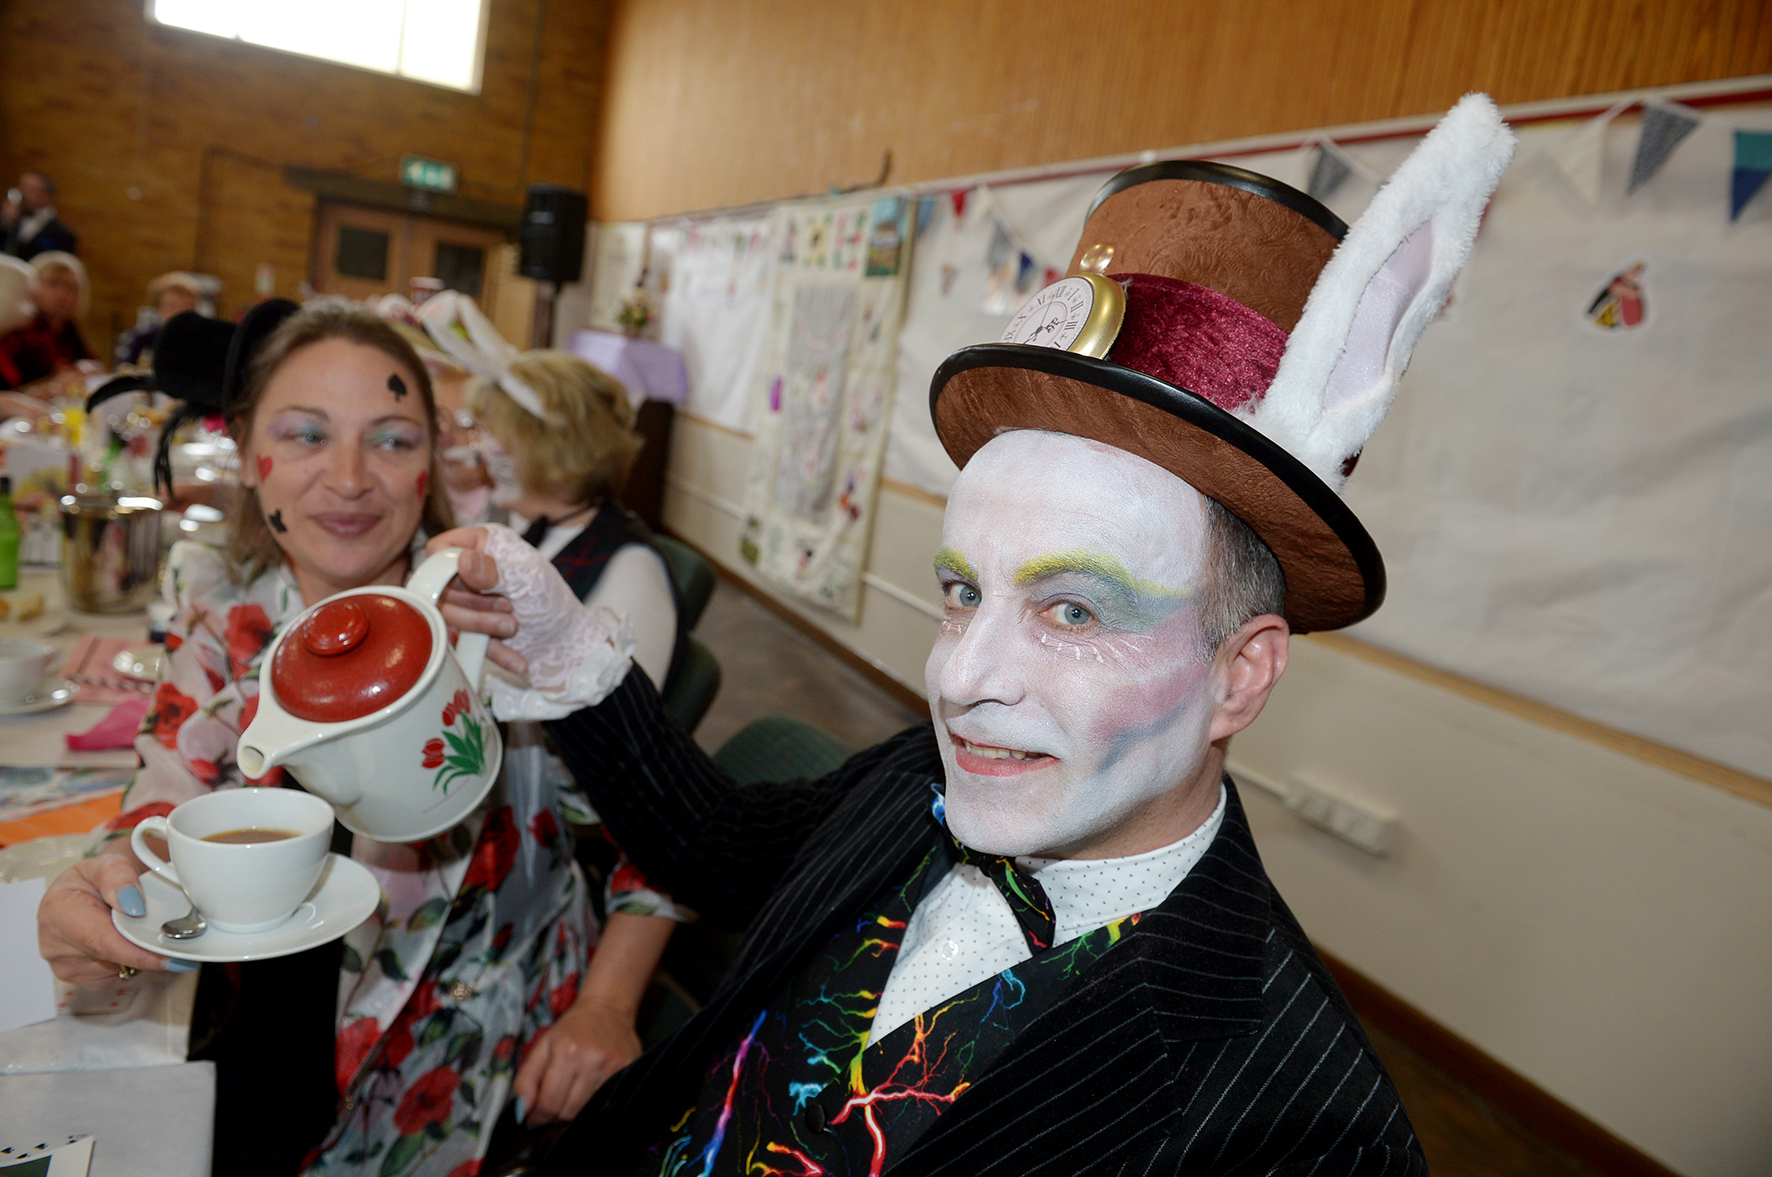 Dawn Power and Daniel Belcher.St Nicholas Church Hall, 208 Long Rd, Canvey.Women's Institute from Furtherwick, Knightswick and Benfleet  has 150 members attending an afternoon tea themed on the Mad Hatters Tea Party.